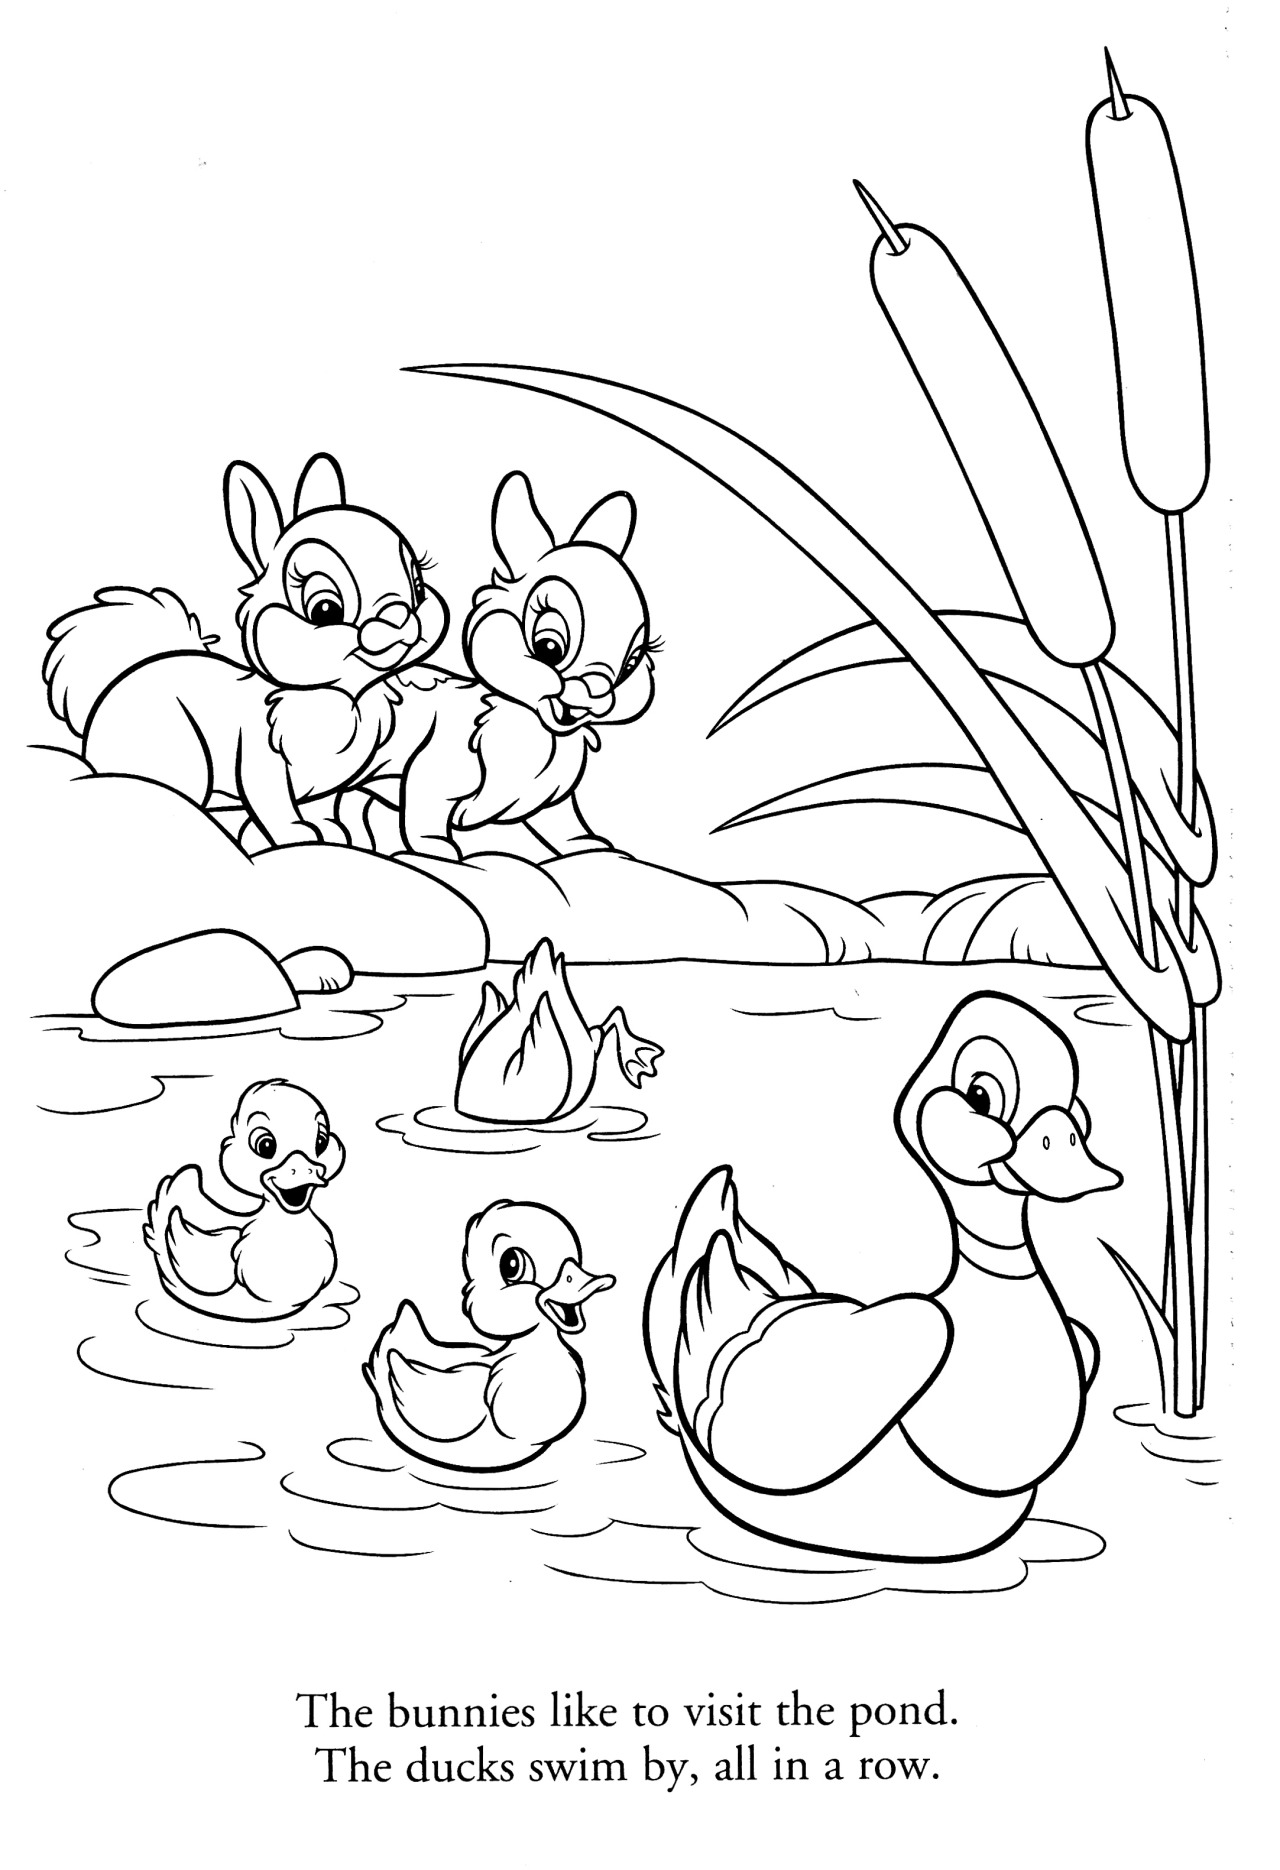 Bunnies And Ducks Coloring Page